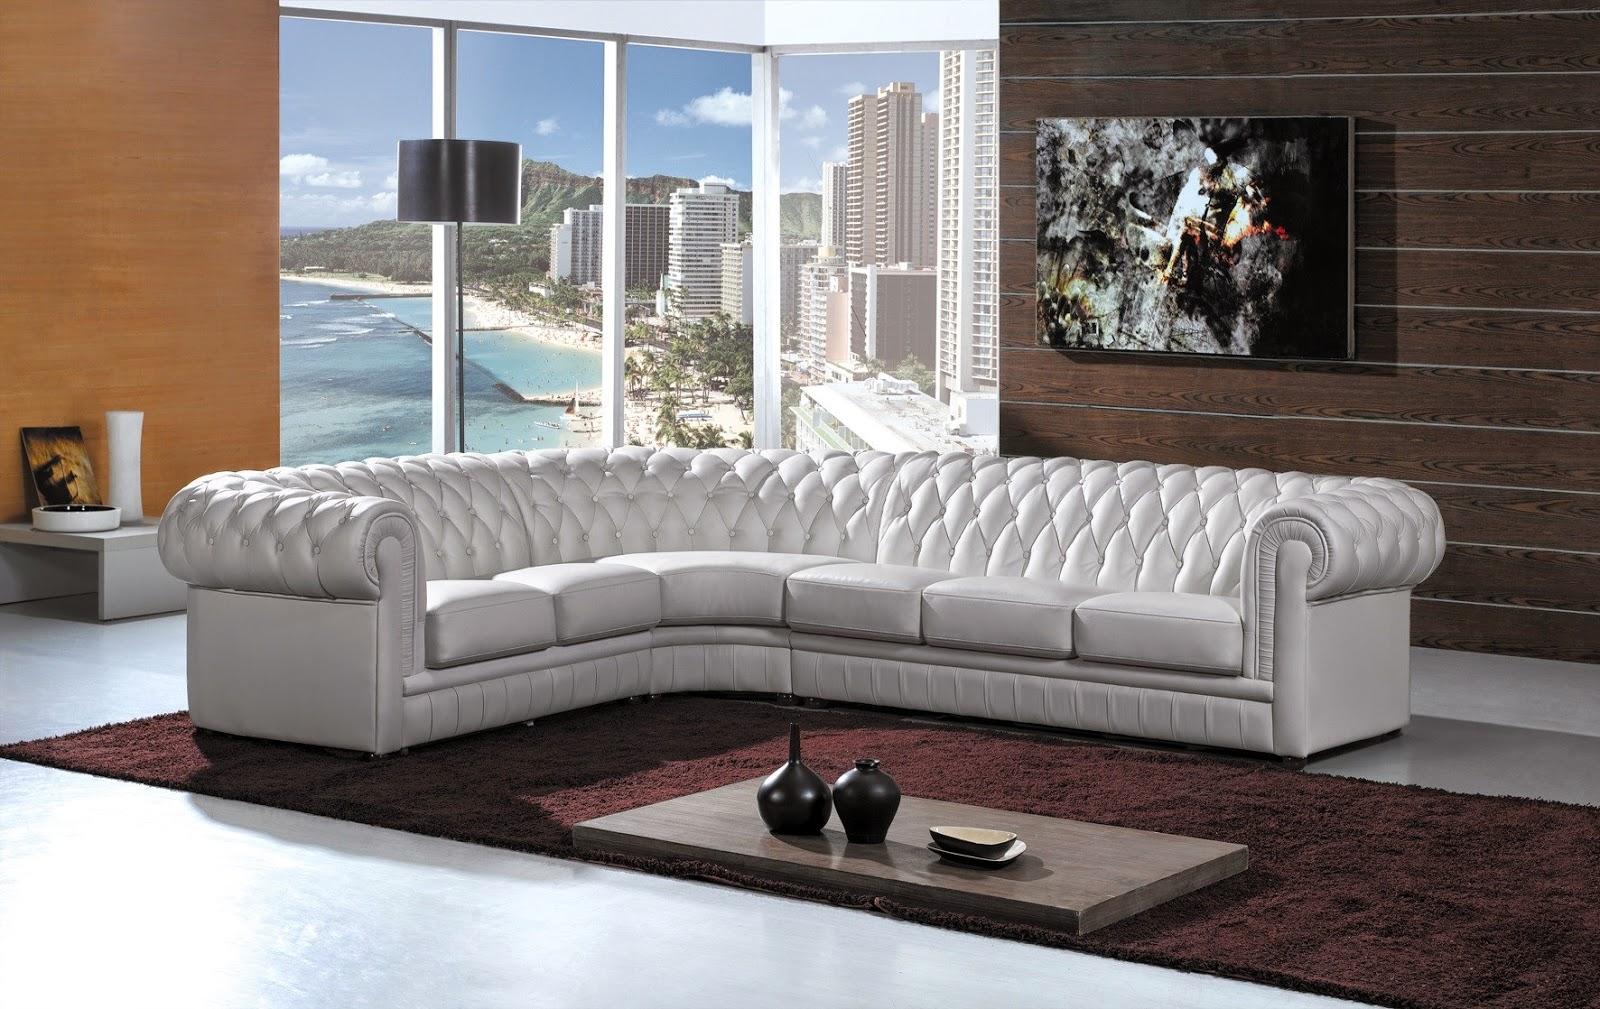 White leather chesterfield corner sofa brokeasshome white leather chesterfield corner sofa memsaheb net parisarafo Choice Image